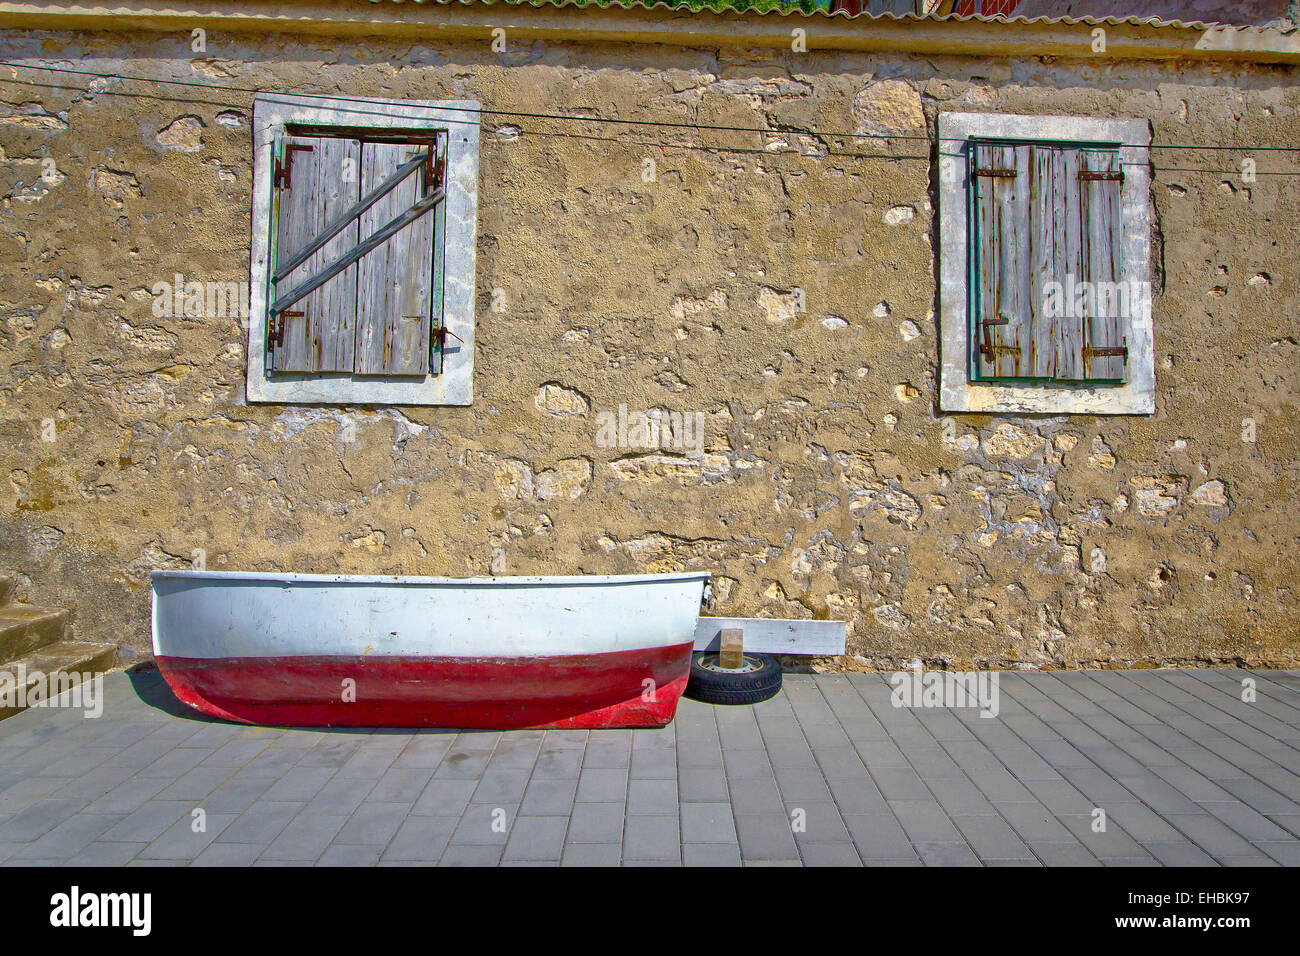 Dalmatian old boat street view - Stock Image